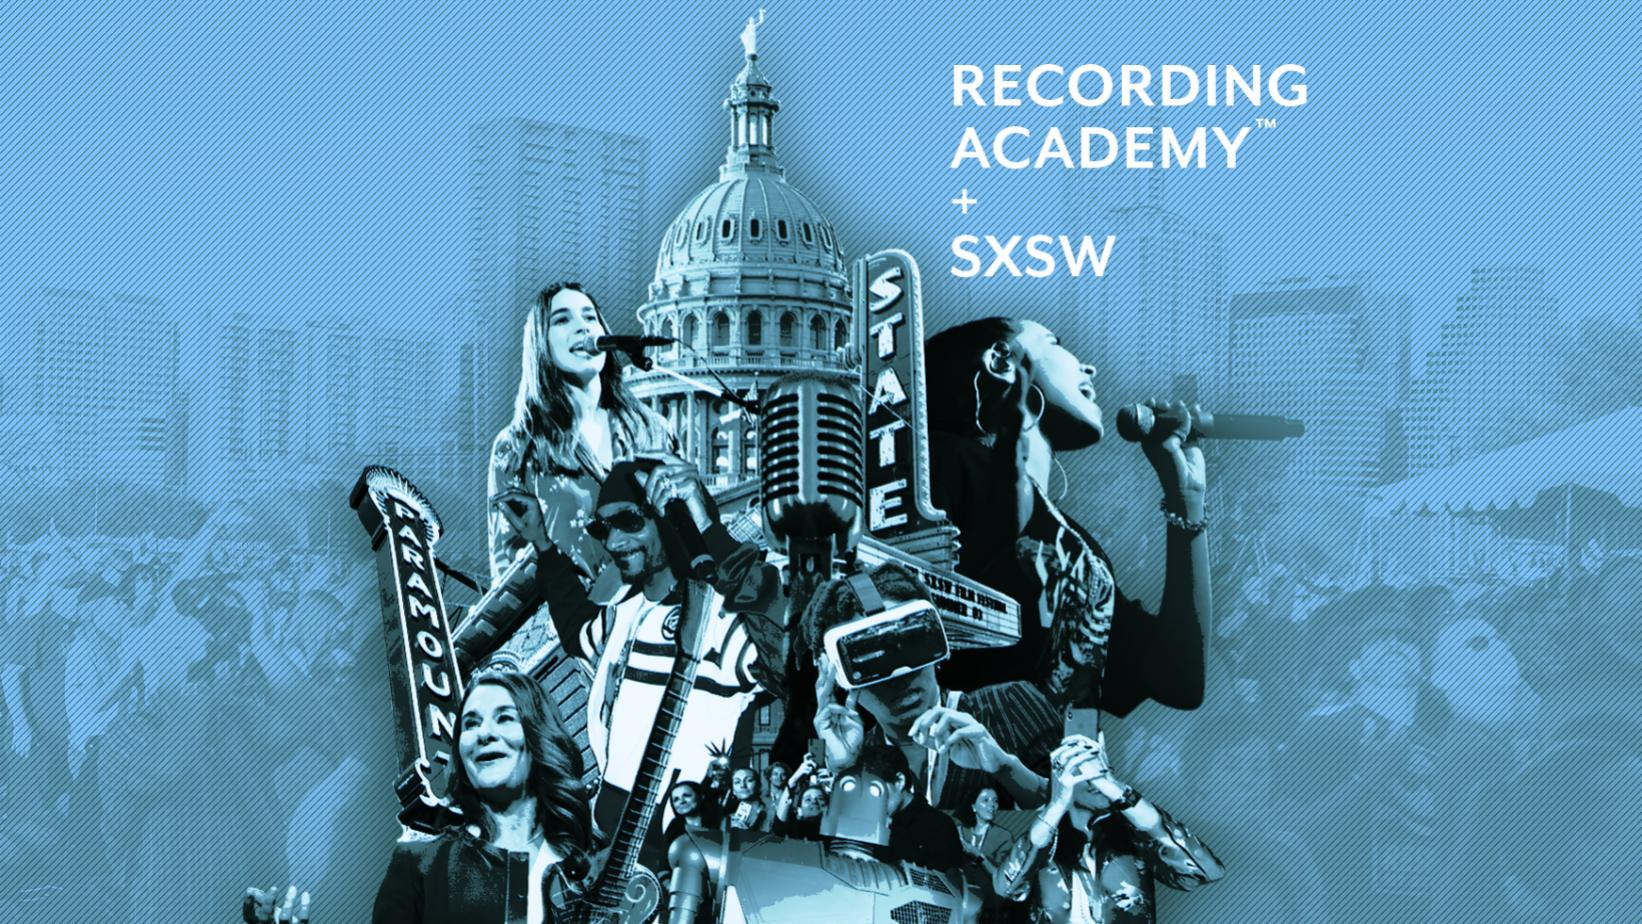 Go inside SXSW 2018 with the Recording Academy